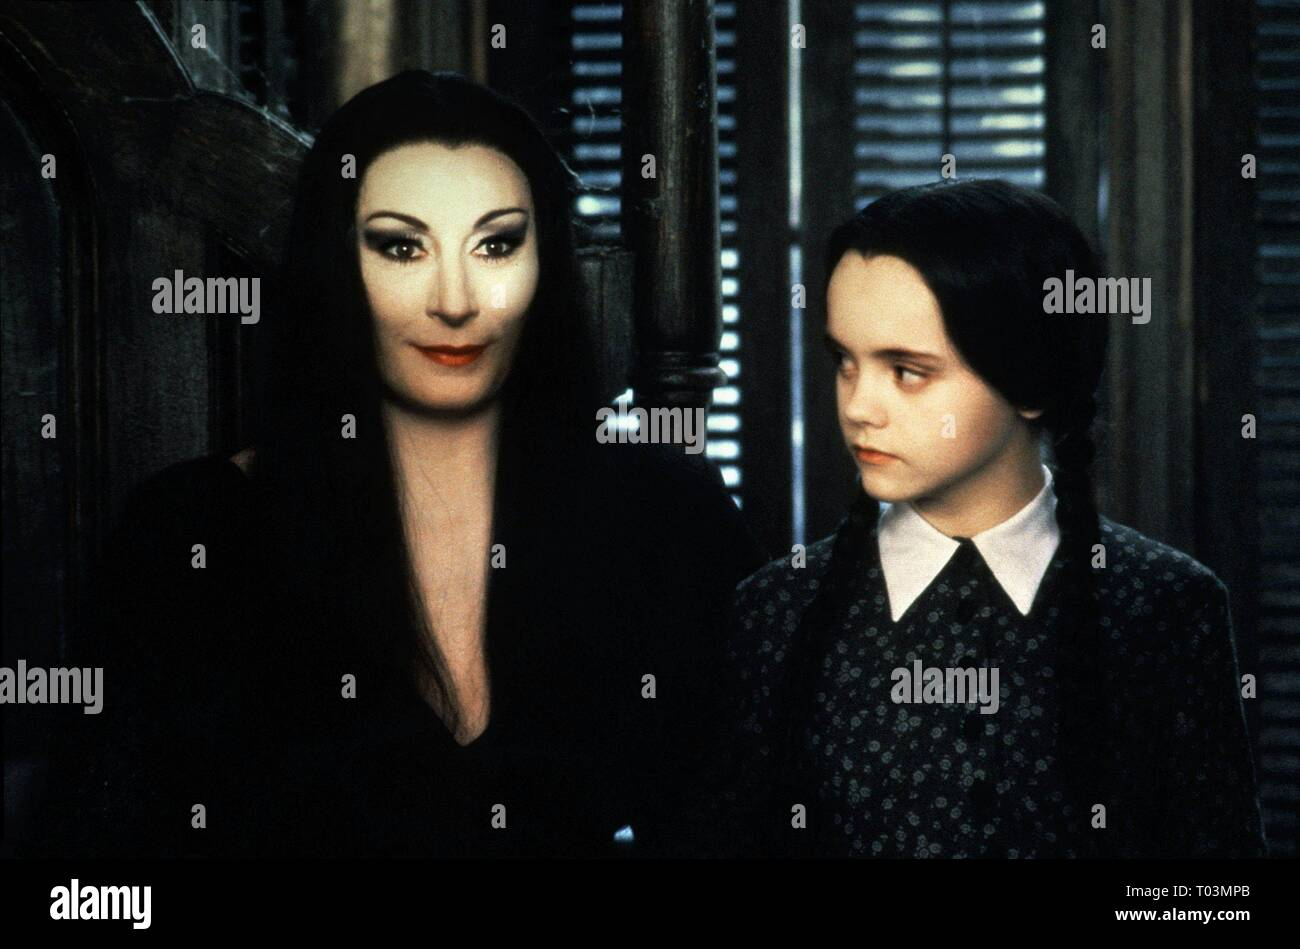 Addams Family ValuesStock Photos and Images